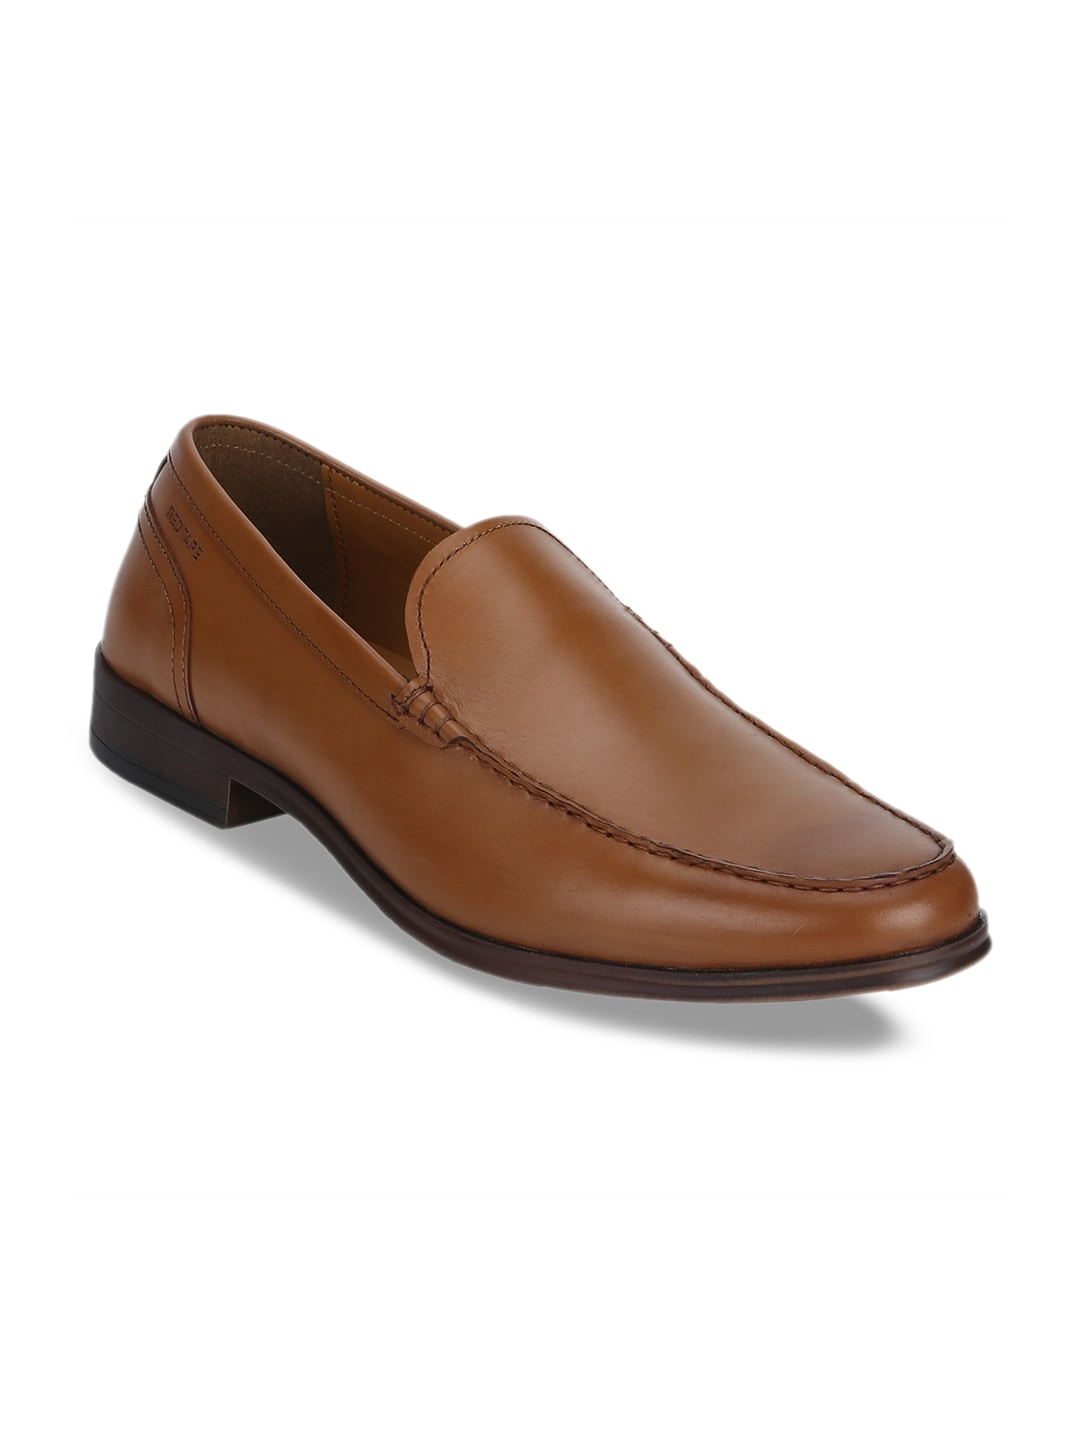 02517760d0 Formal Shoes Online - Buy Formal Shoes for Men & Women in India